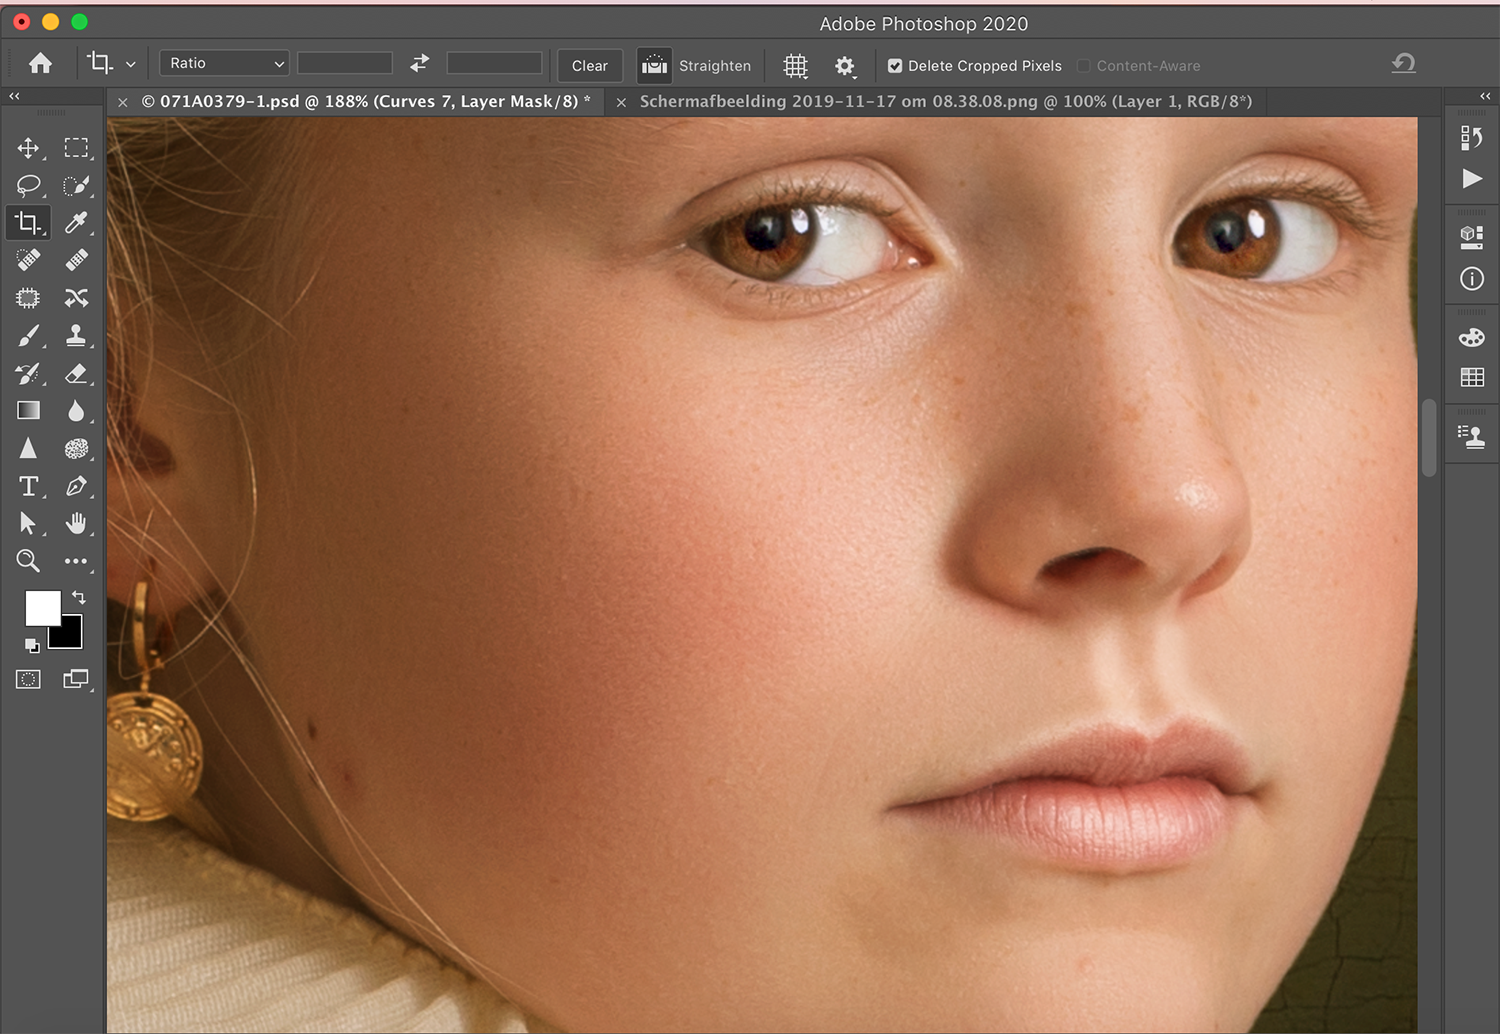 After retouching